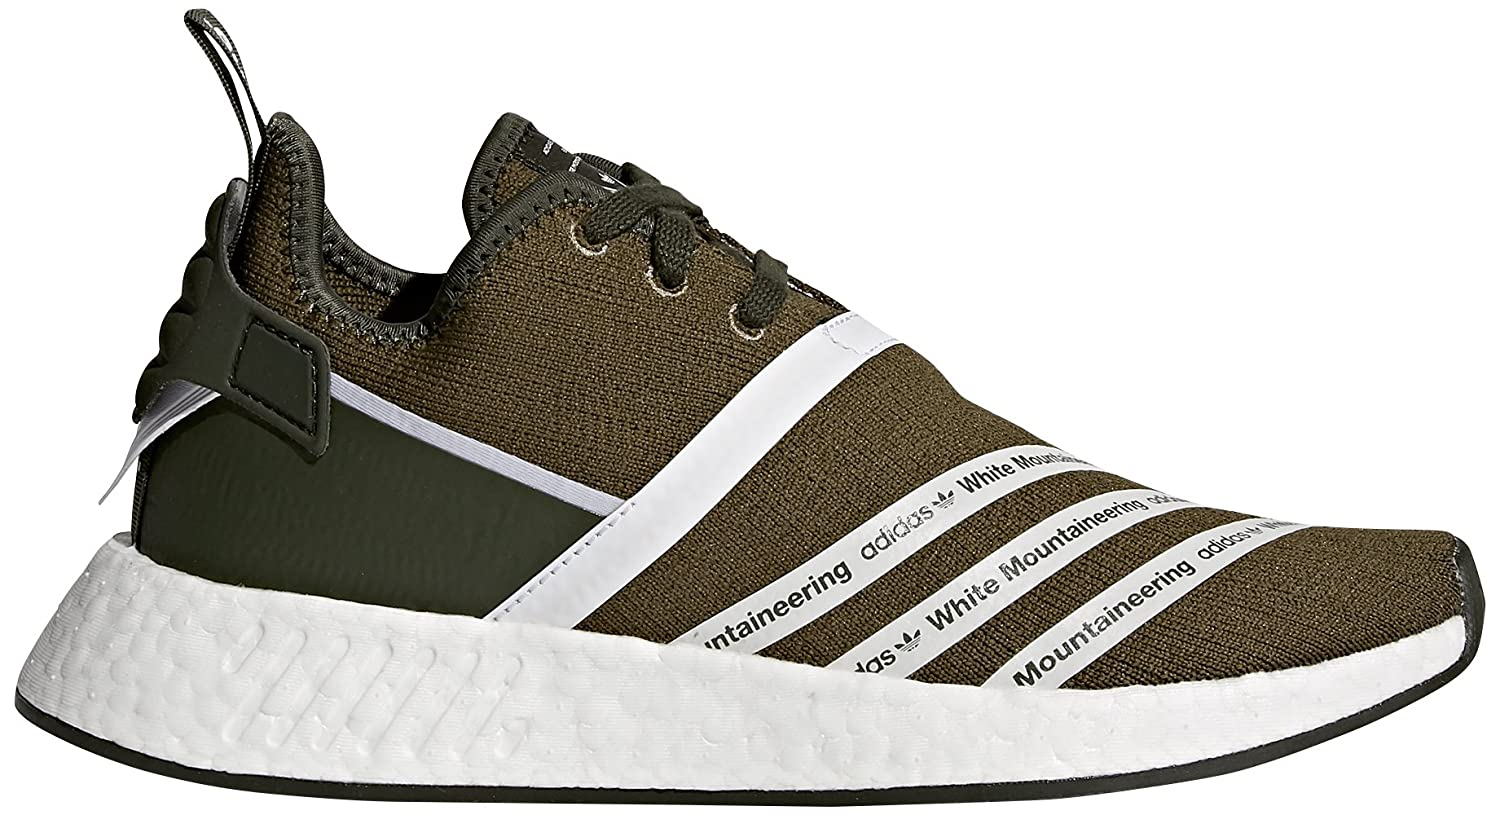 meet a9099 b2ed7 Amazon.com   adidas Originals Men s Wm NMD R2 Pk Sneaker   Fashion Sneakers